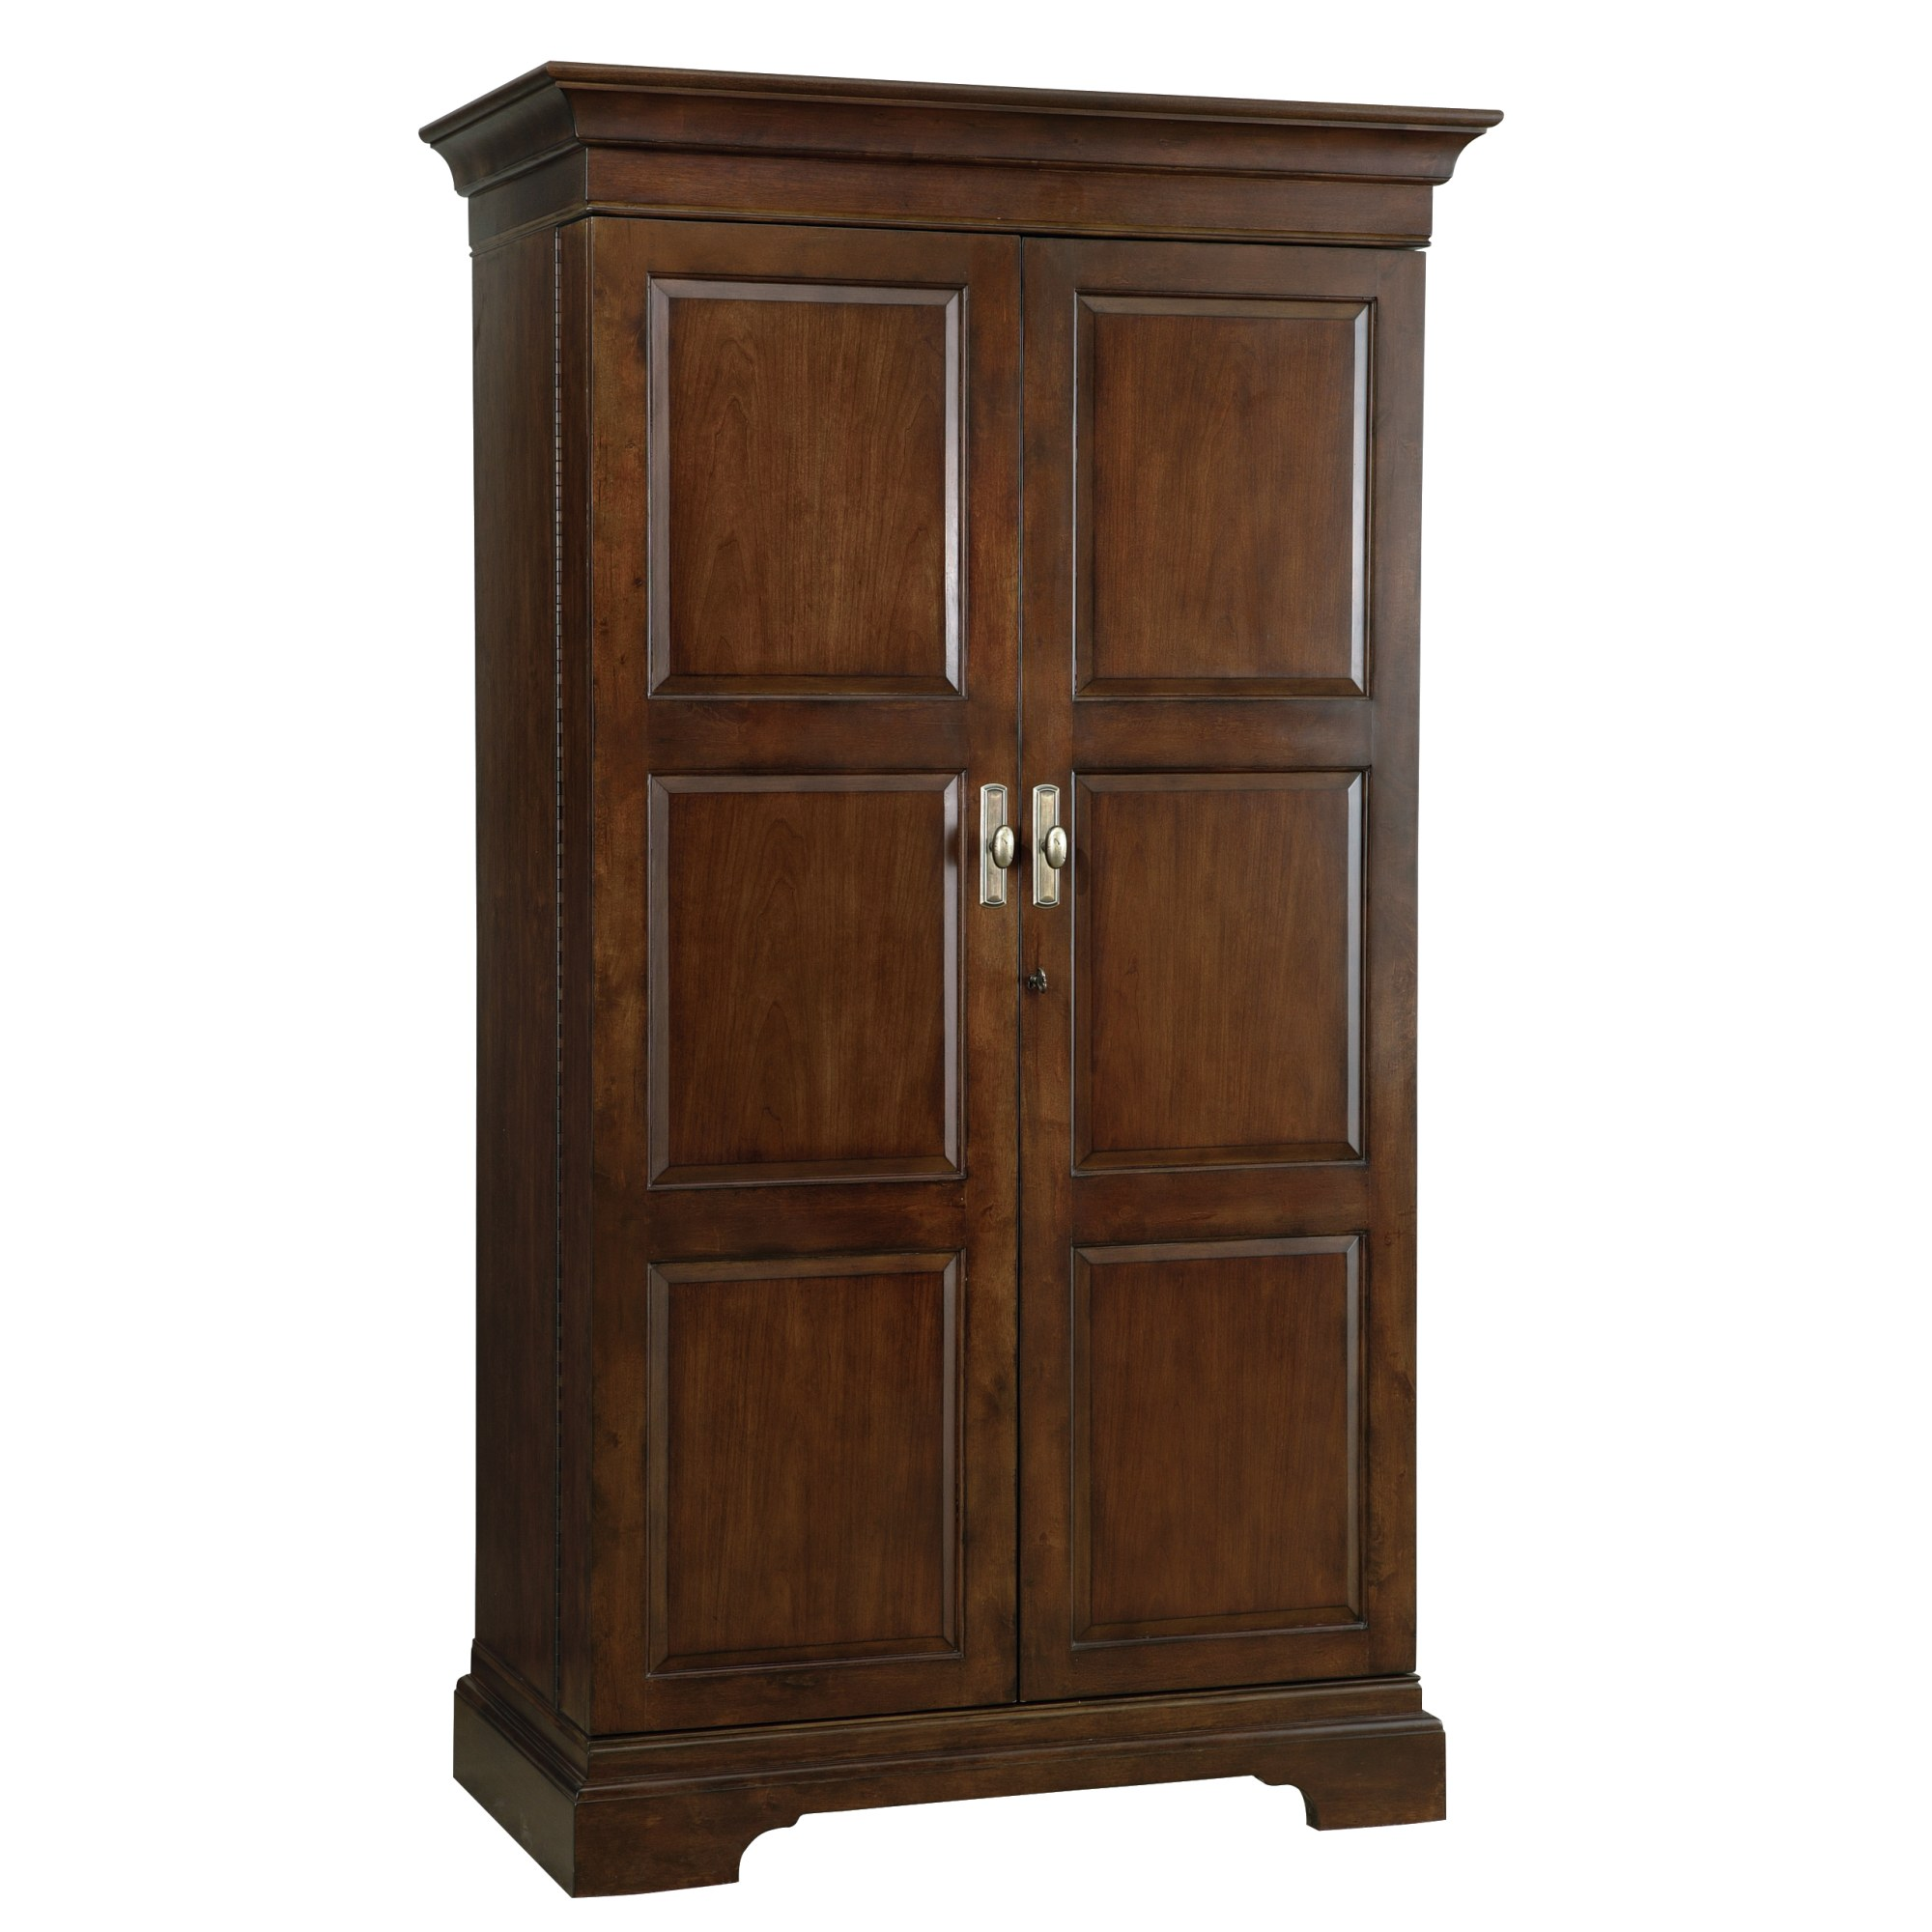 Image for 695-065 Sonoma II Wine & Bar Cabinet from Howard Miller Official Website